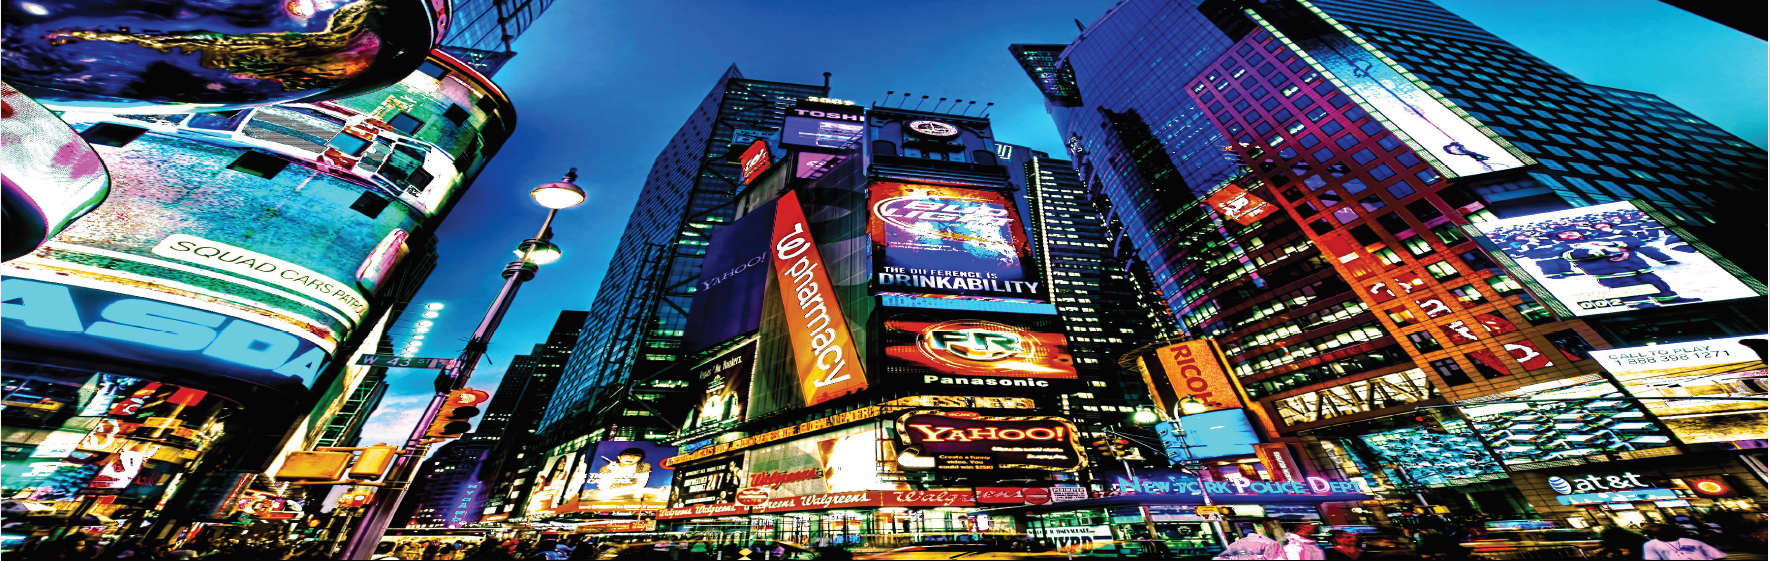 Intelligent Digital Signage: Tailor content based on real-time automobile and pedestrian demographics.